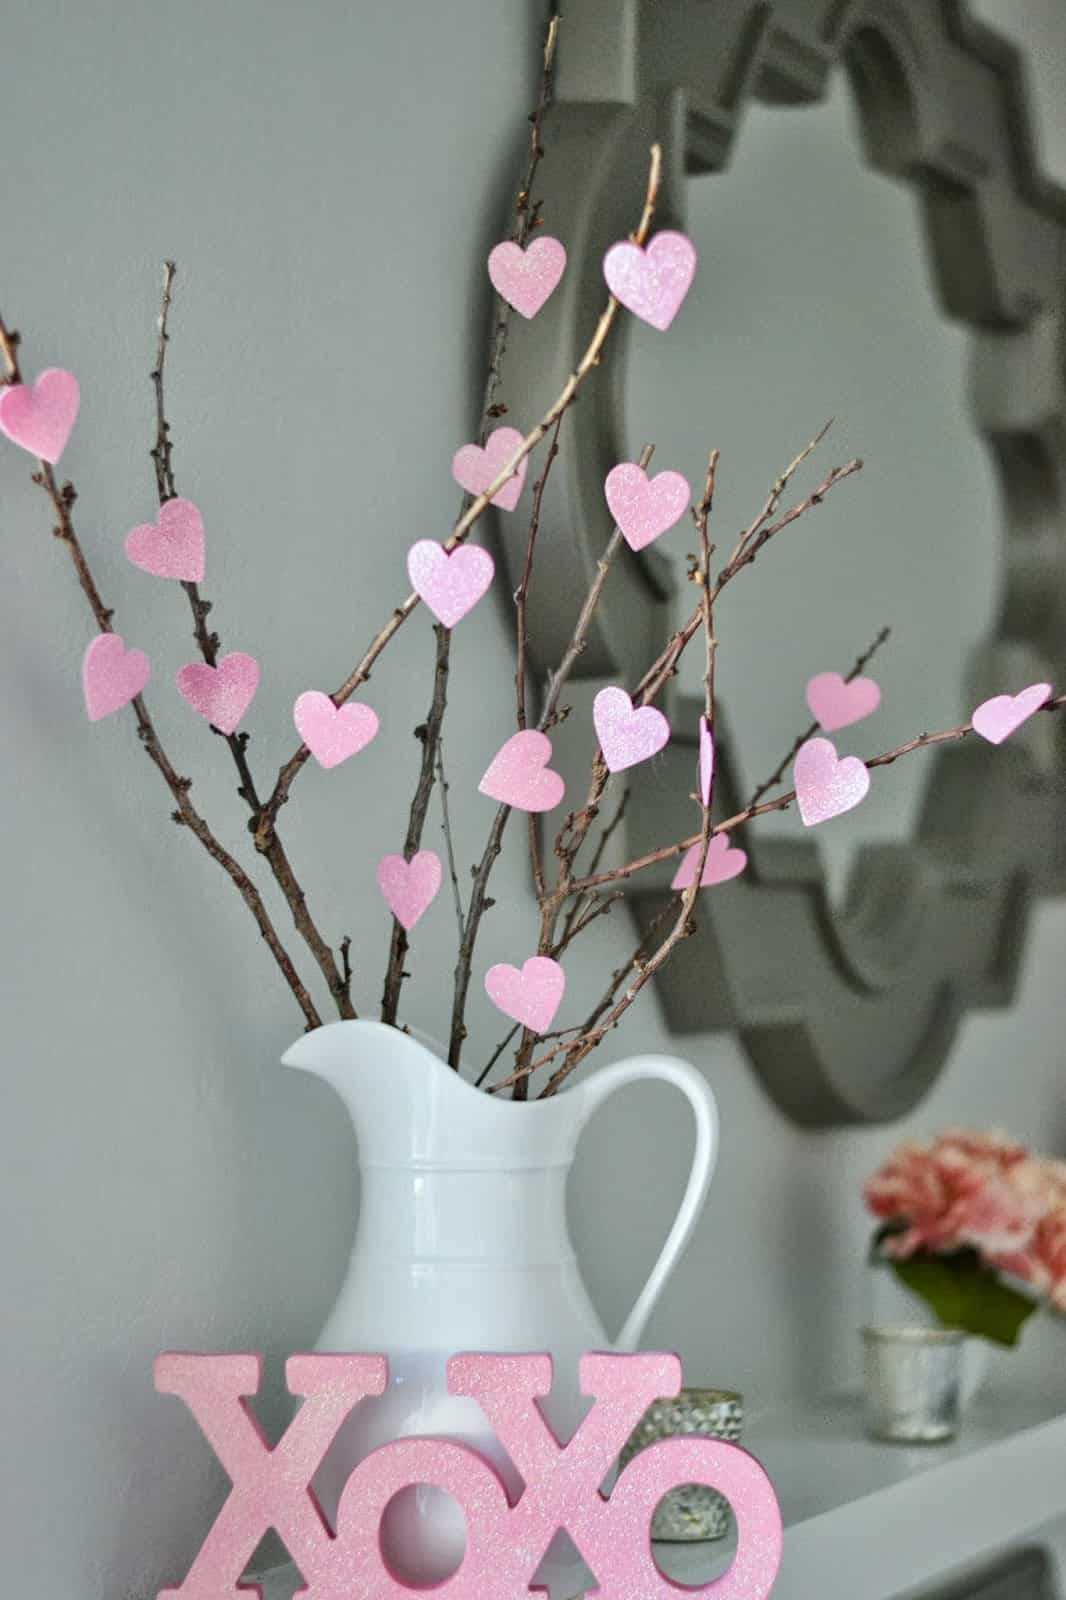 14 Stunning Valentine's Day Decoration Ideas